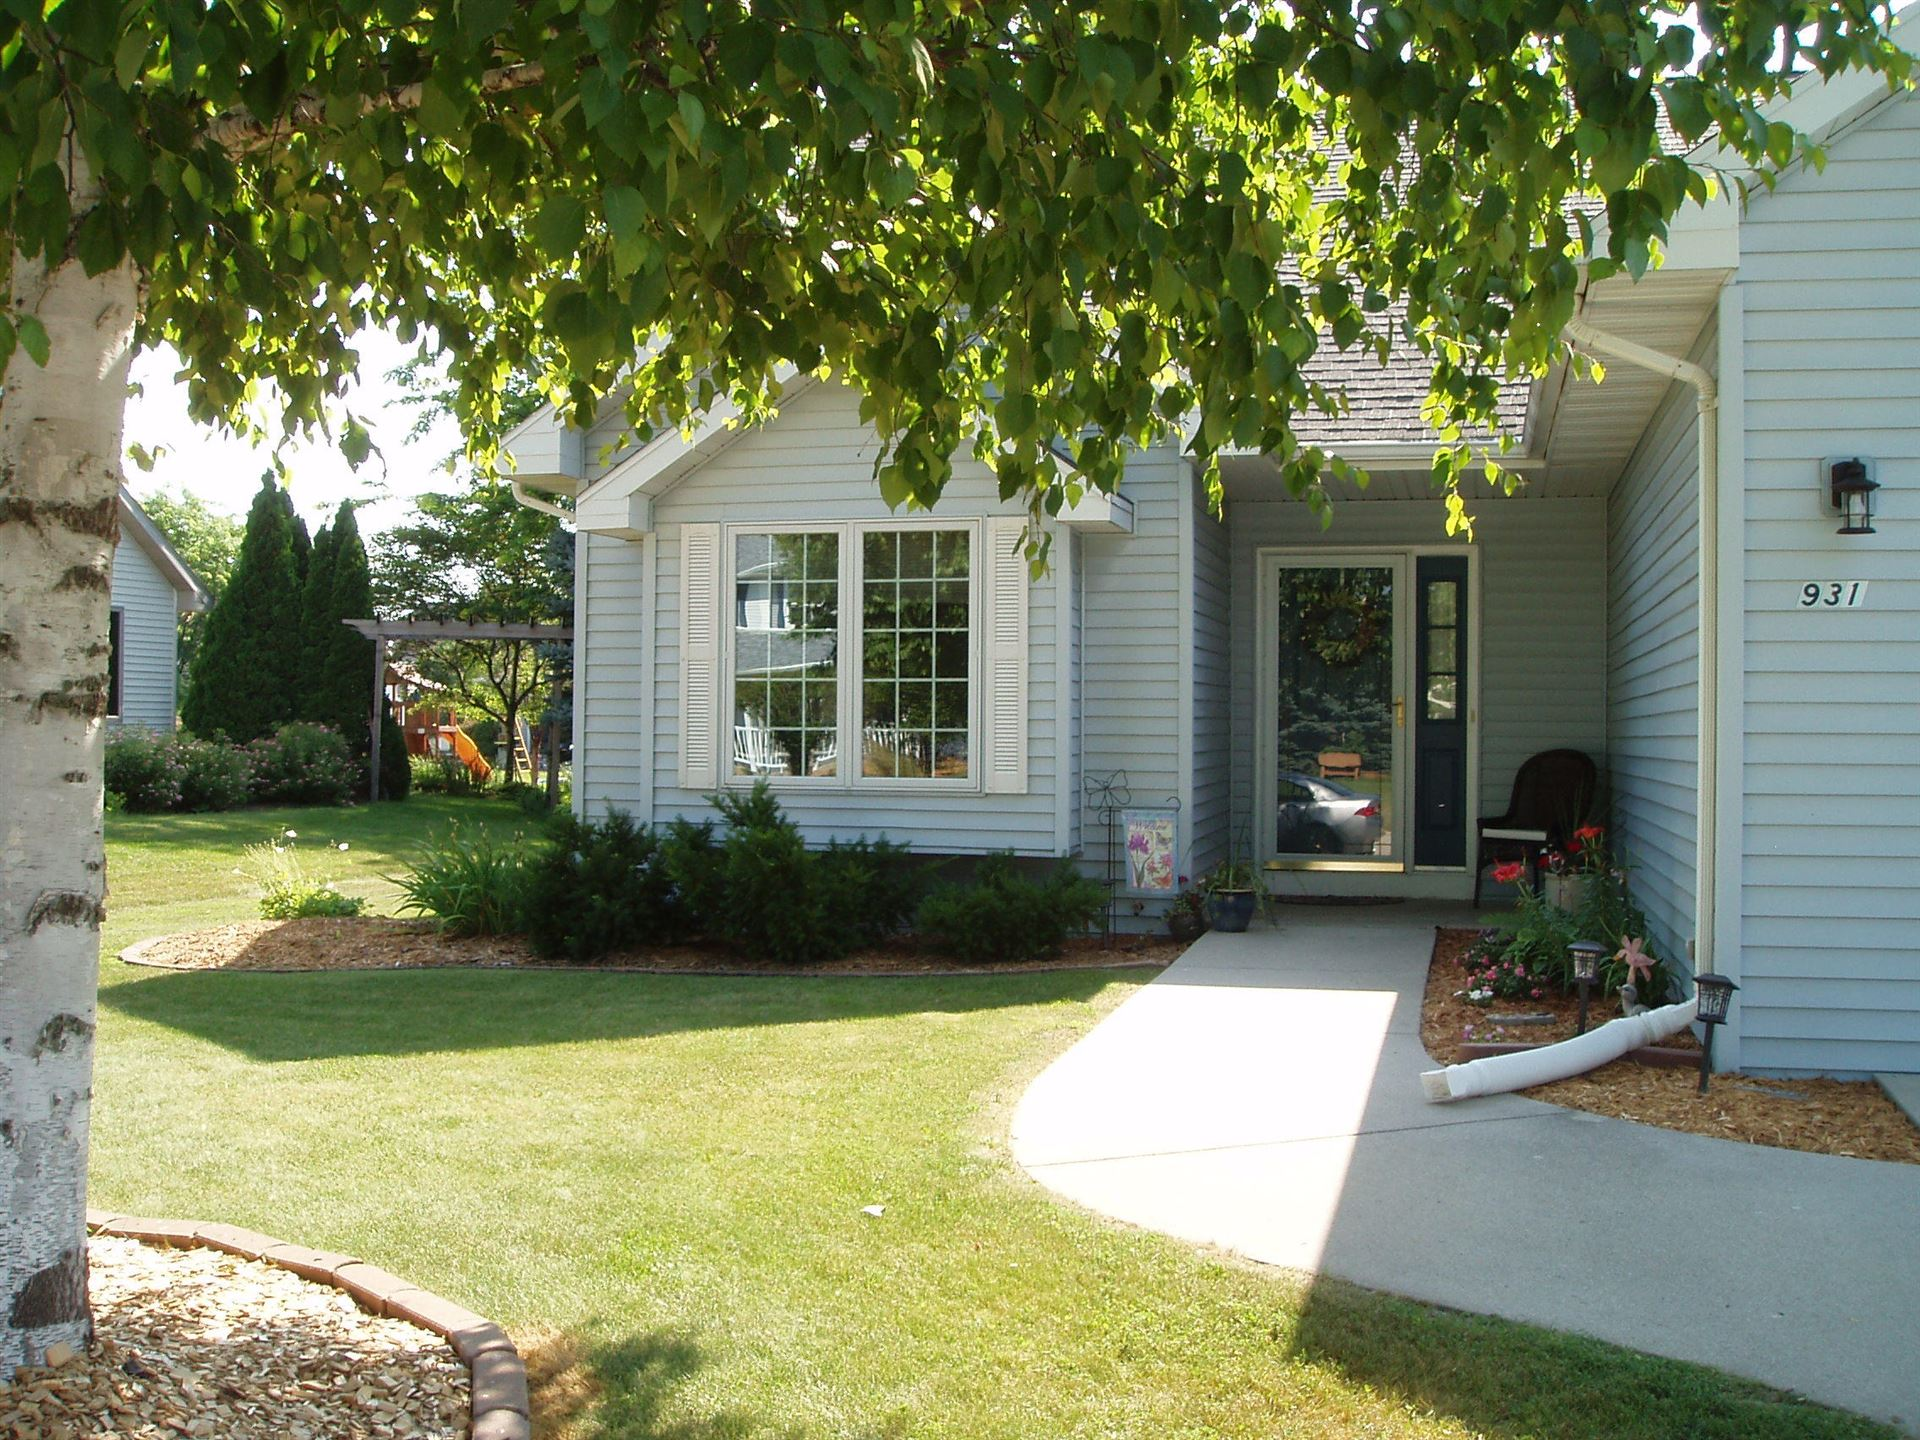 931 Beech Dr #1, Plymouth, WI 53073 - #: 1697817